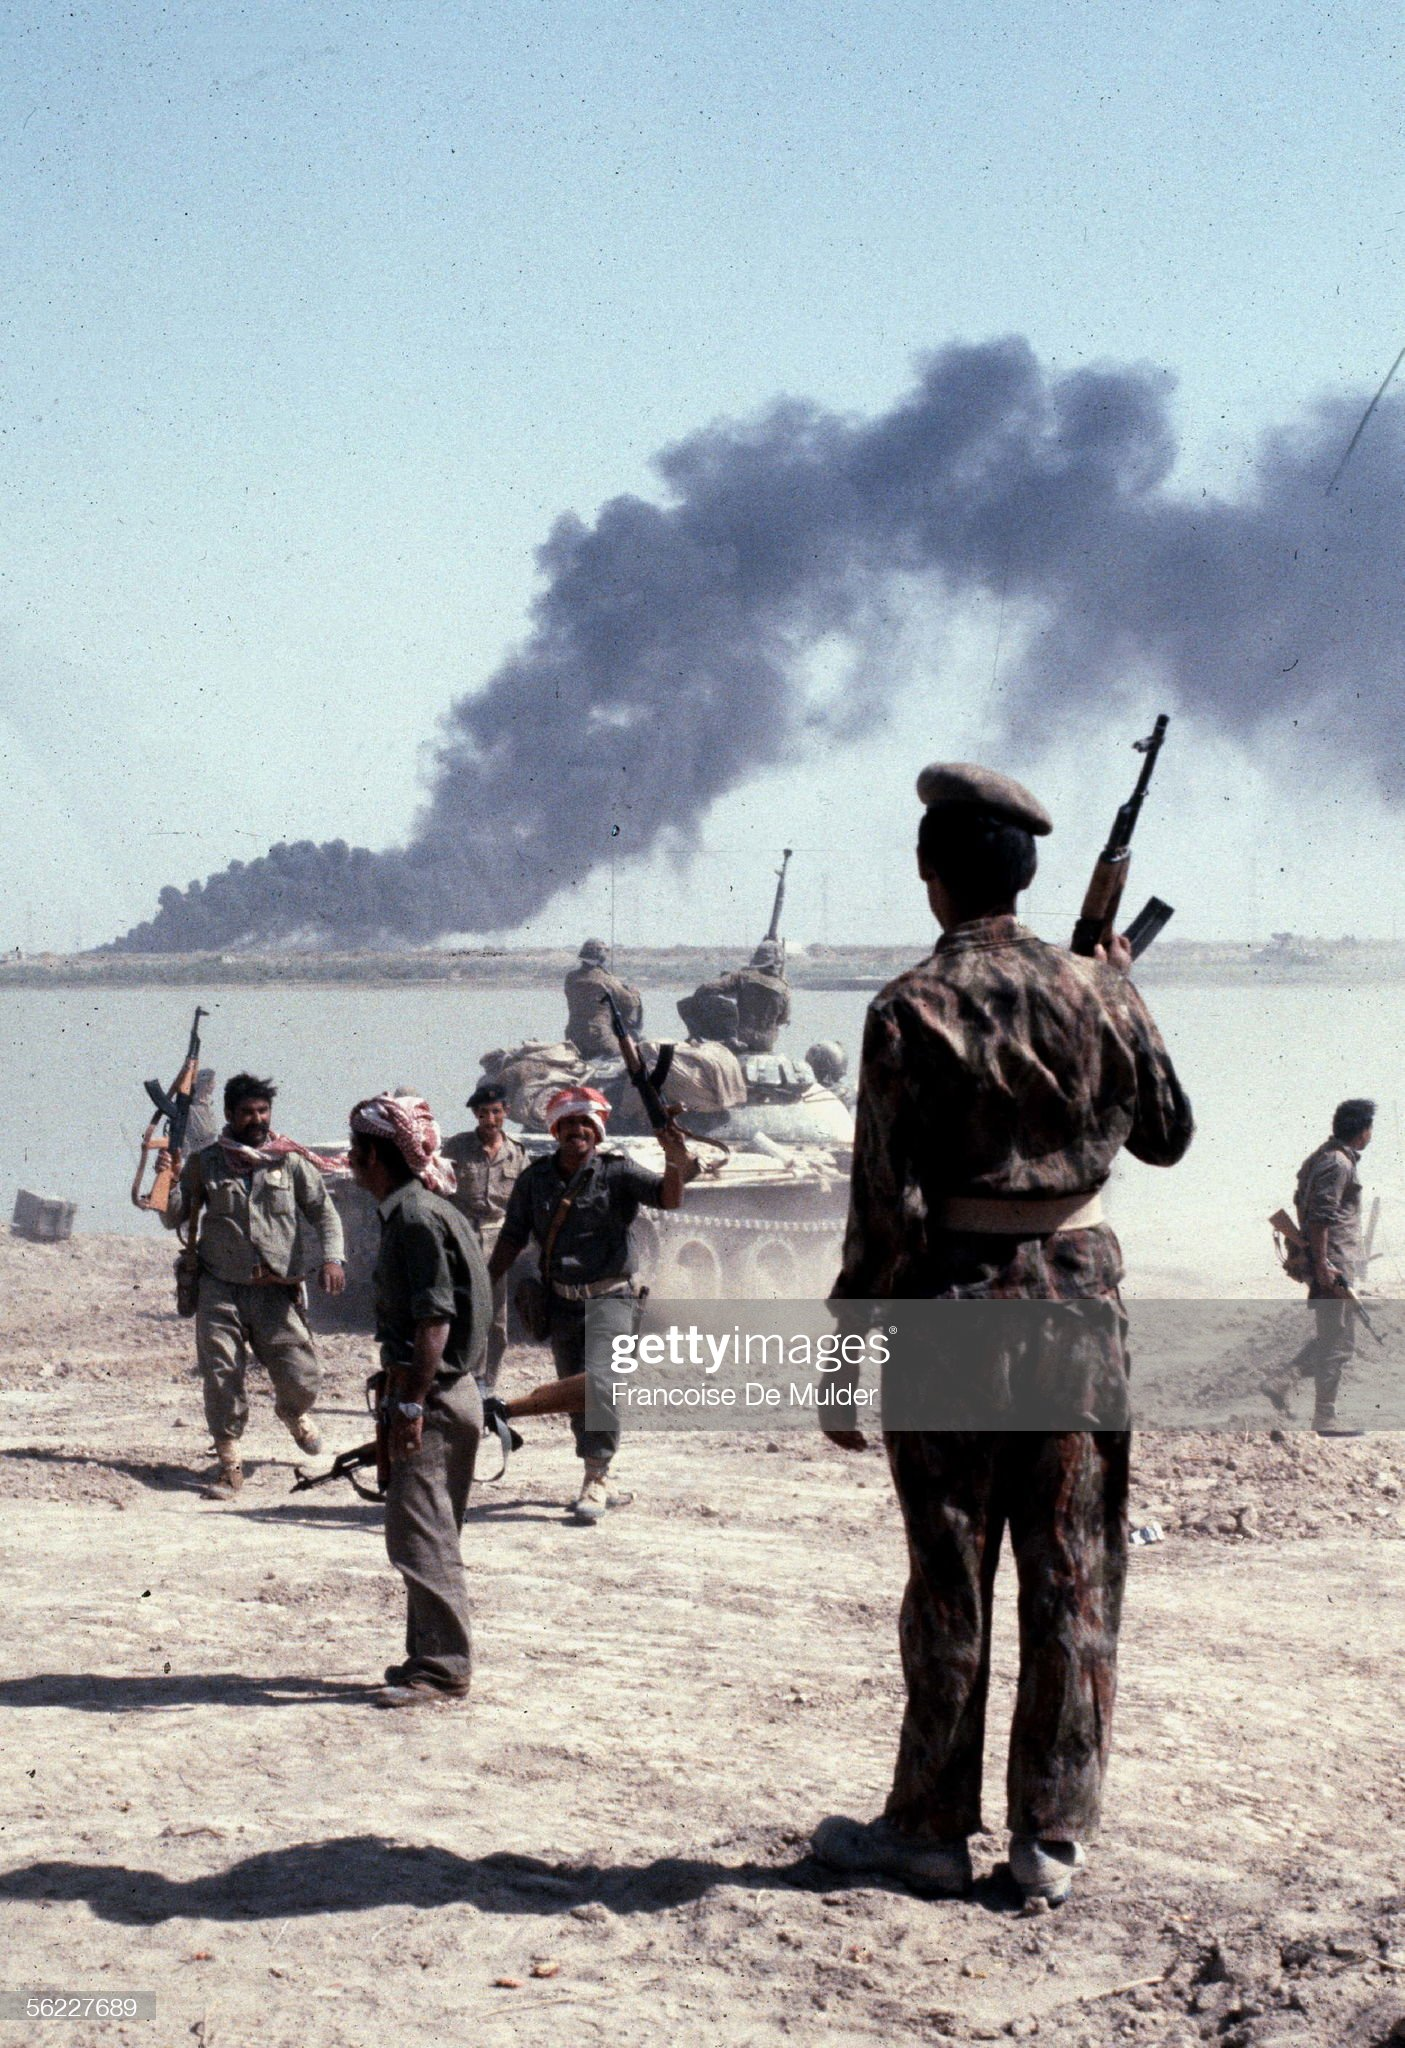 war-iraniraq-khorramchahr-in-october-198...=2048x2048